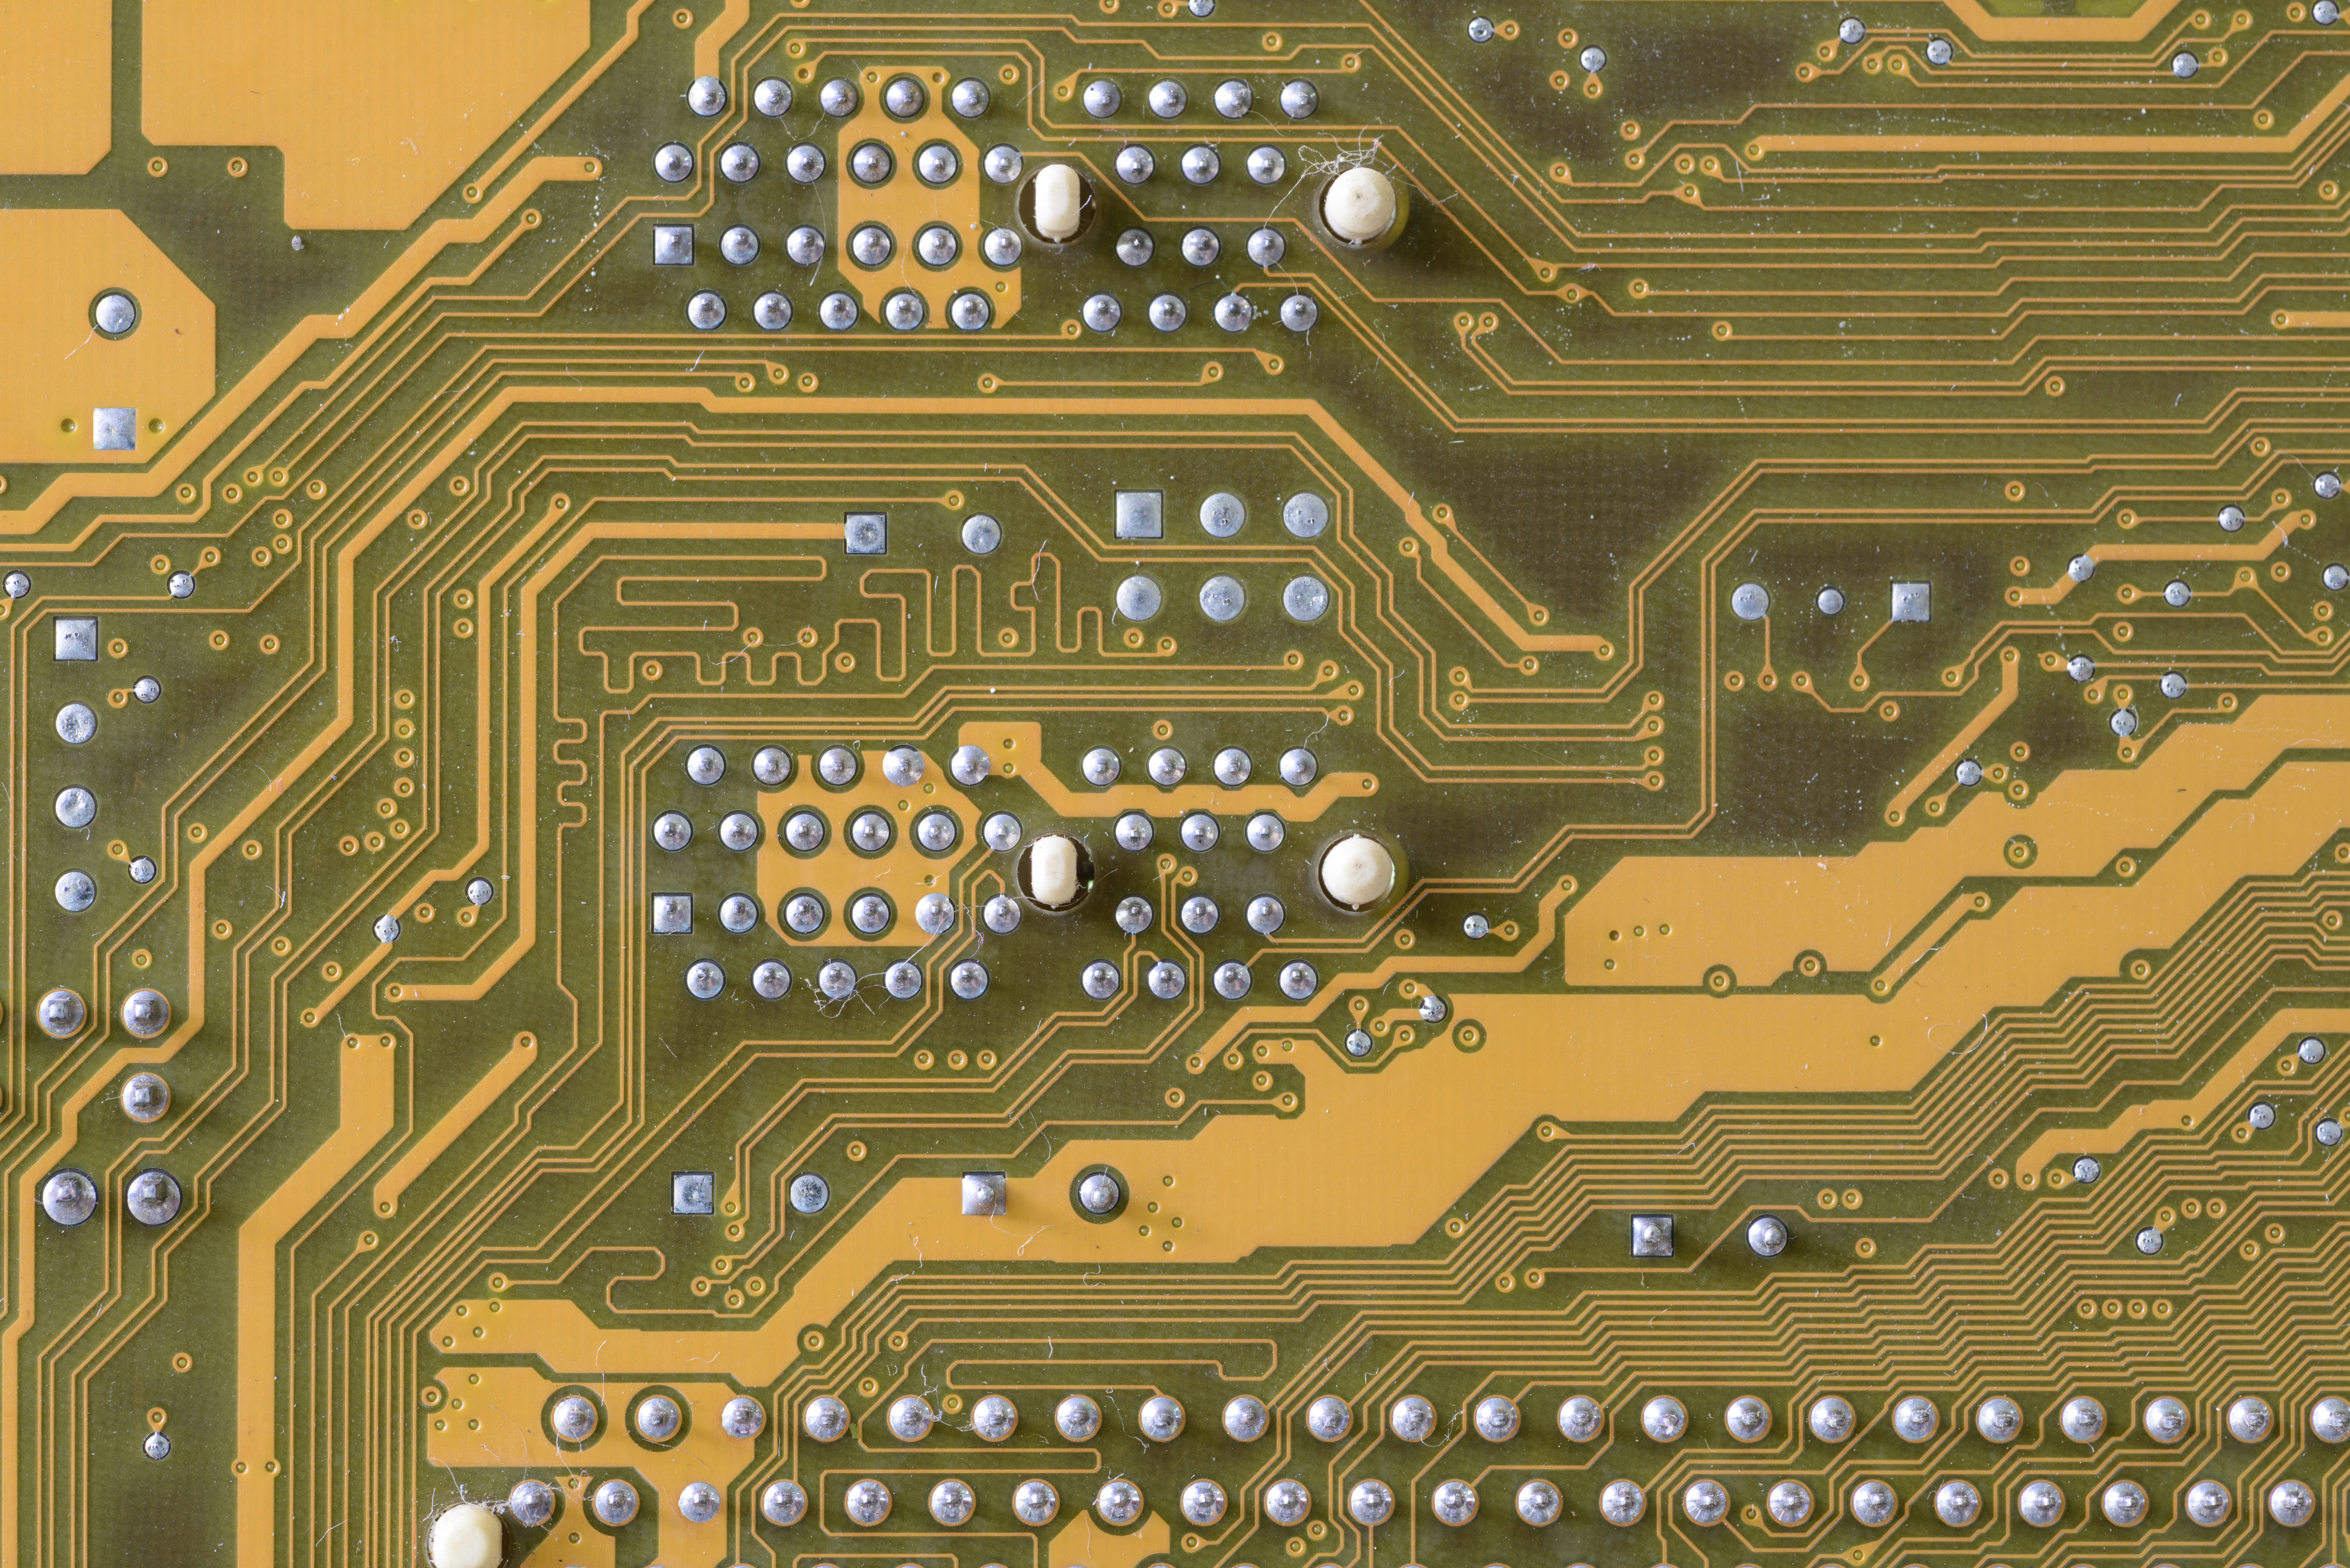 Electronic Circuit Board Global Trade Review Gtr Electric